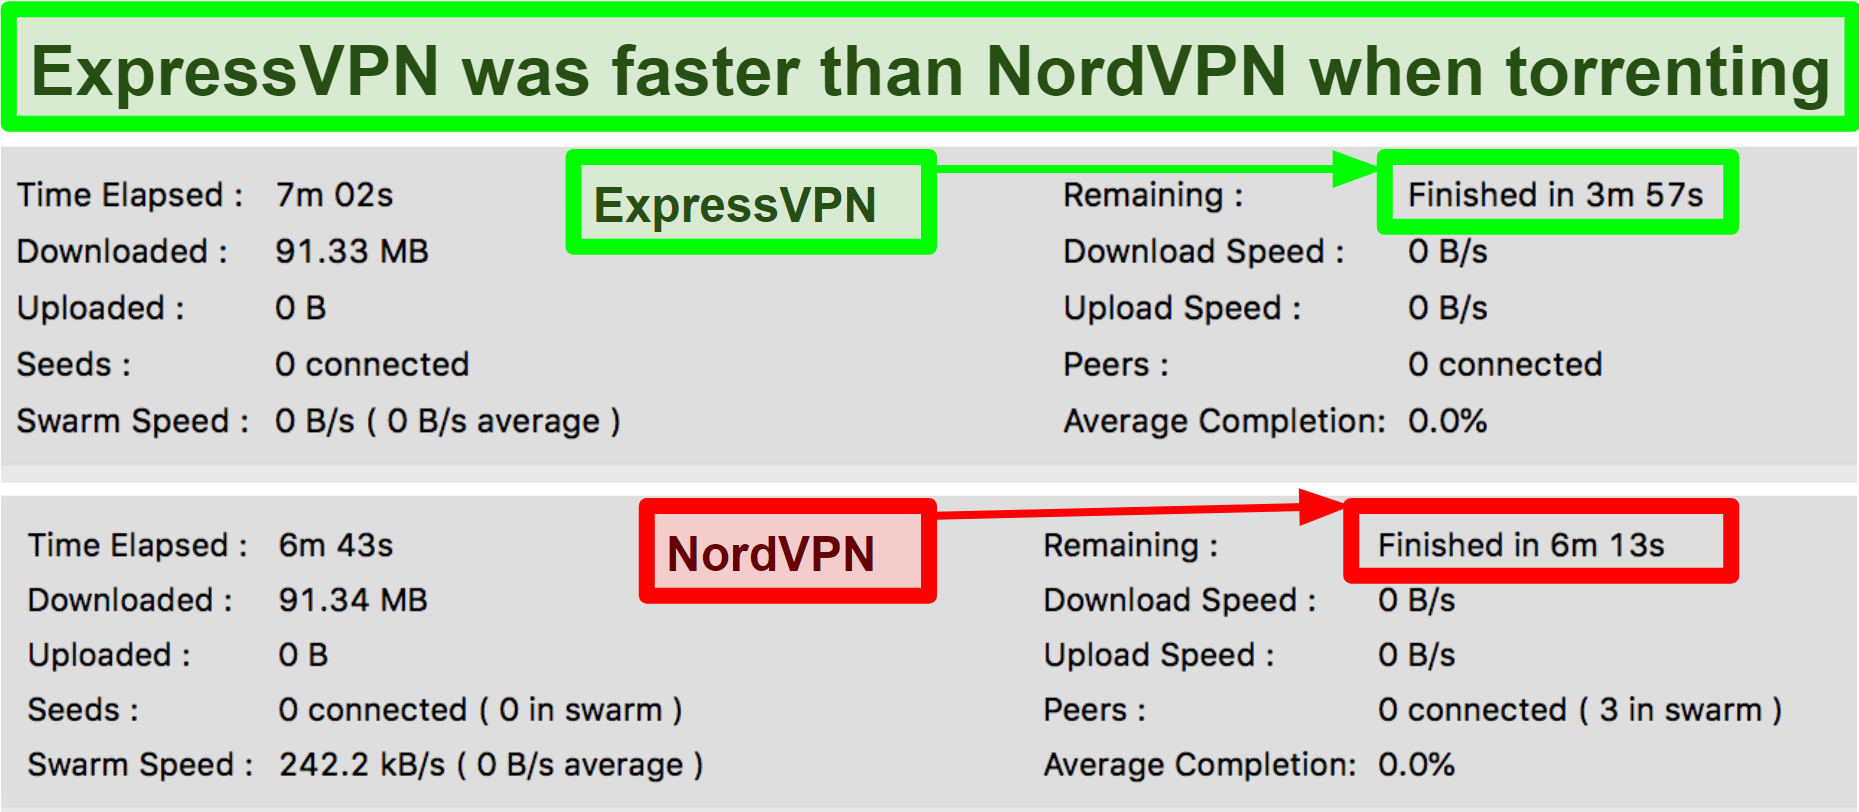 Sreenshot of video download time on Vuze showing ExpressVPN is faster than NordVPN